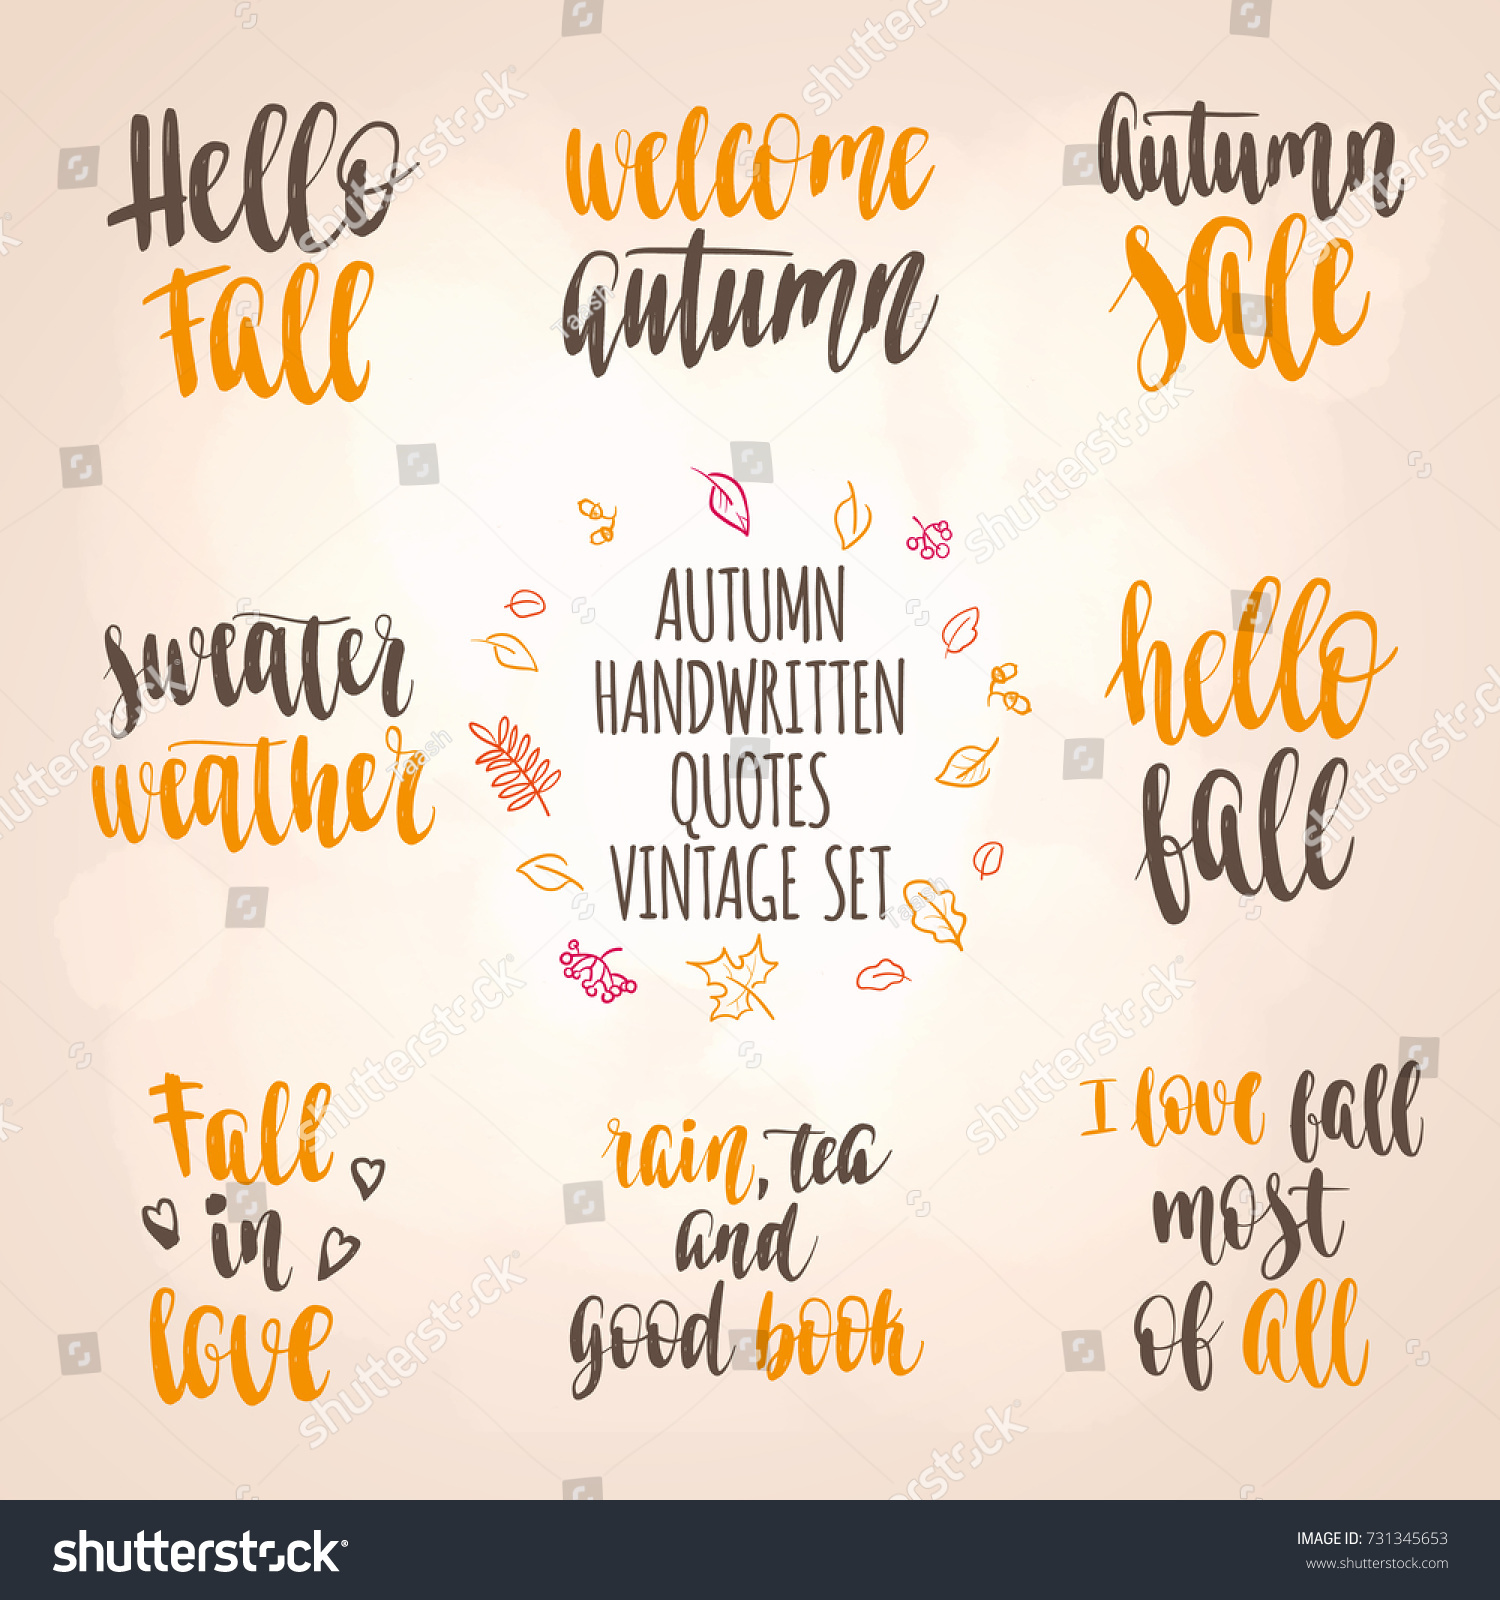 Autumn Quotes Vintage Lettering Set Fall Stock Vector Royalty Free